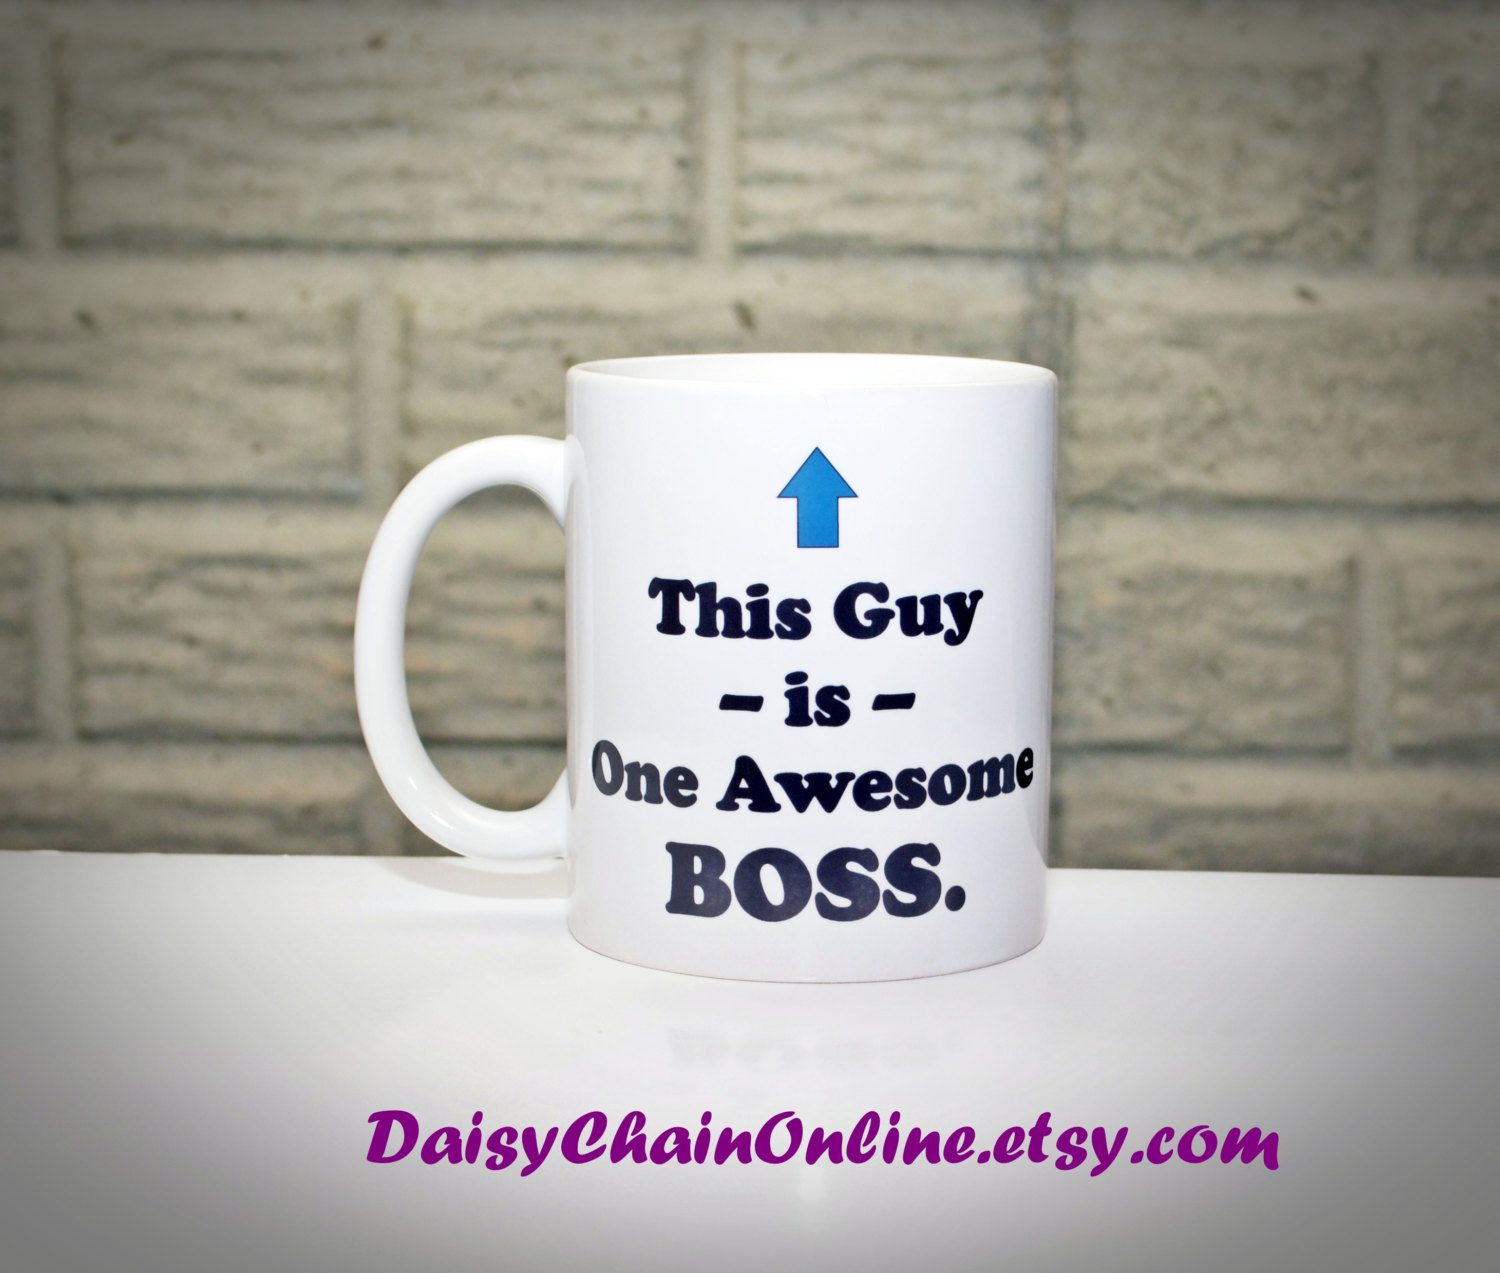 Awesome Funny Christmas Gift Ideas For Men Part - 13: Gift For Boss - Funny Coffee Mug For Boss Christmas Gift, Gift For Men,  Bossu0027s Day Gift, Gift For Boss, Gift For Coworker, Gift For Boss Day